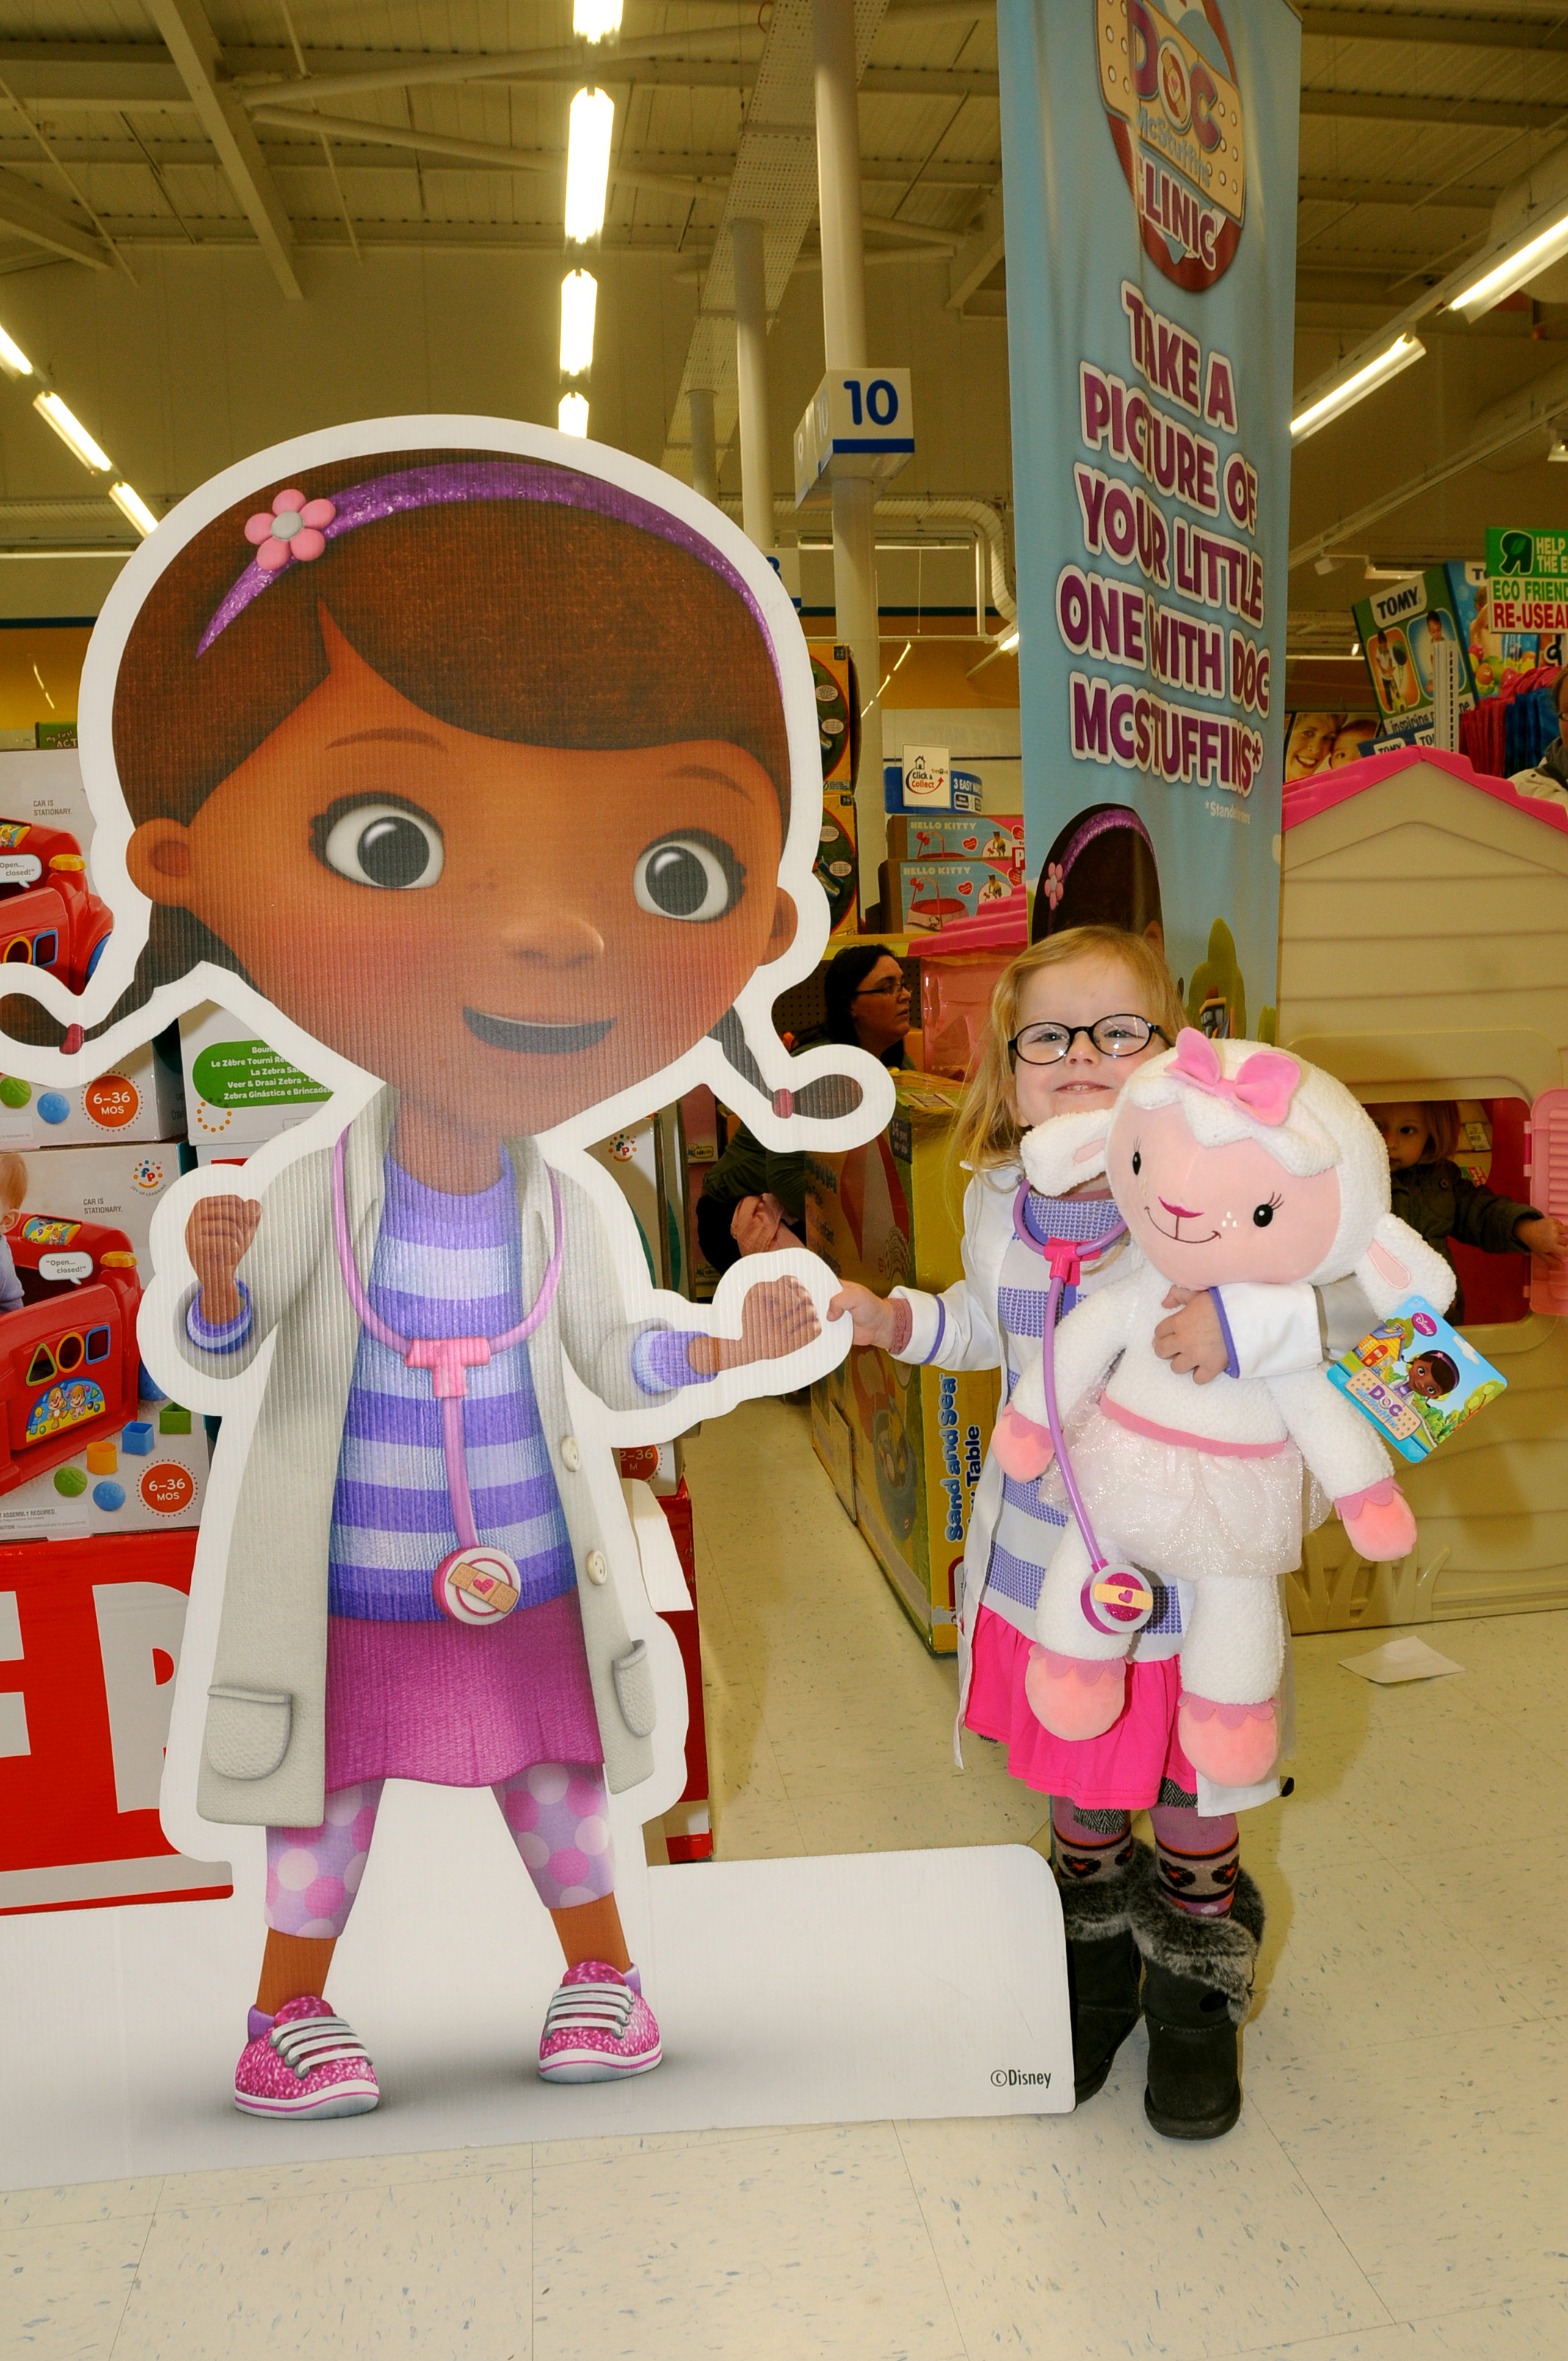 Disney apologise over cardboard cut-out Doc McStuffins